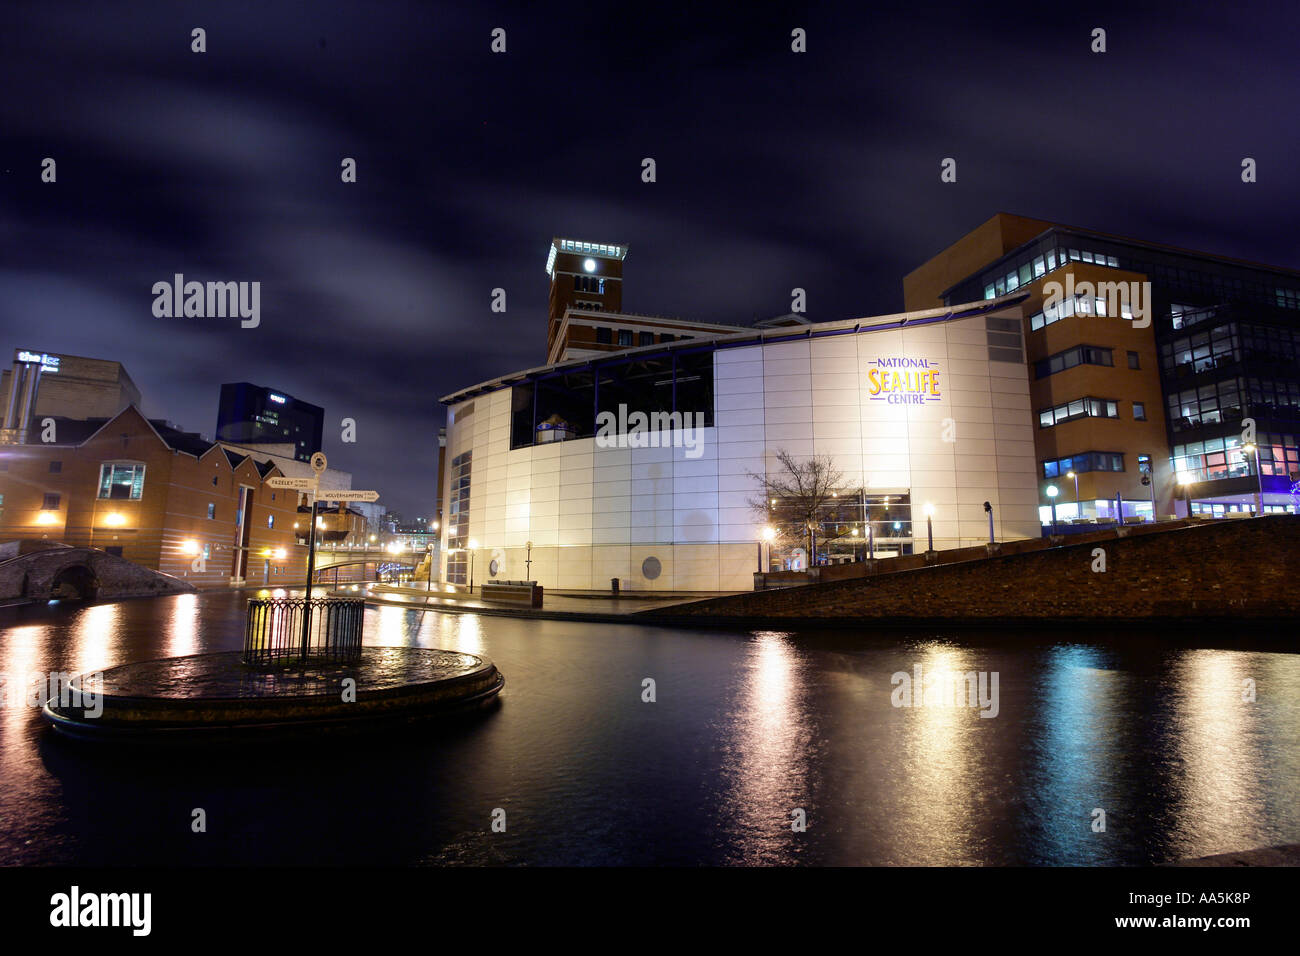 View of the canal area near to Brindleyplace Birmingham England Pictured is the National Sea Life Centre canals - Stock Image